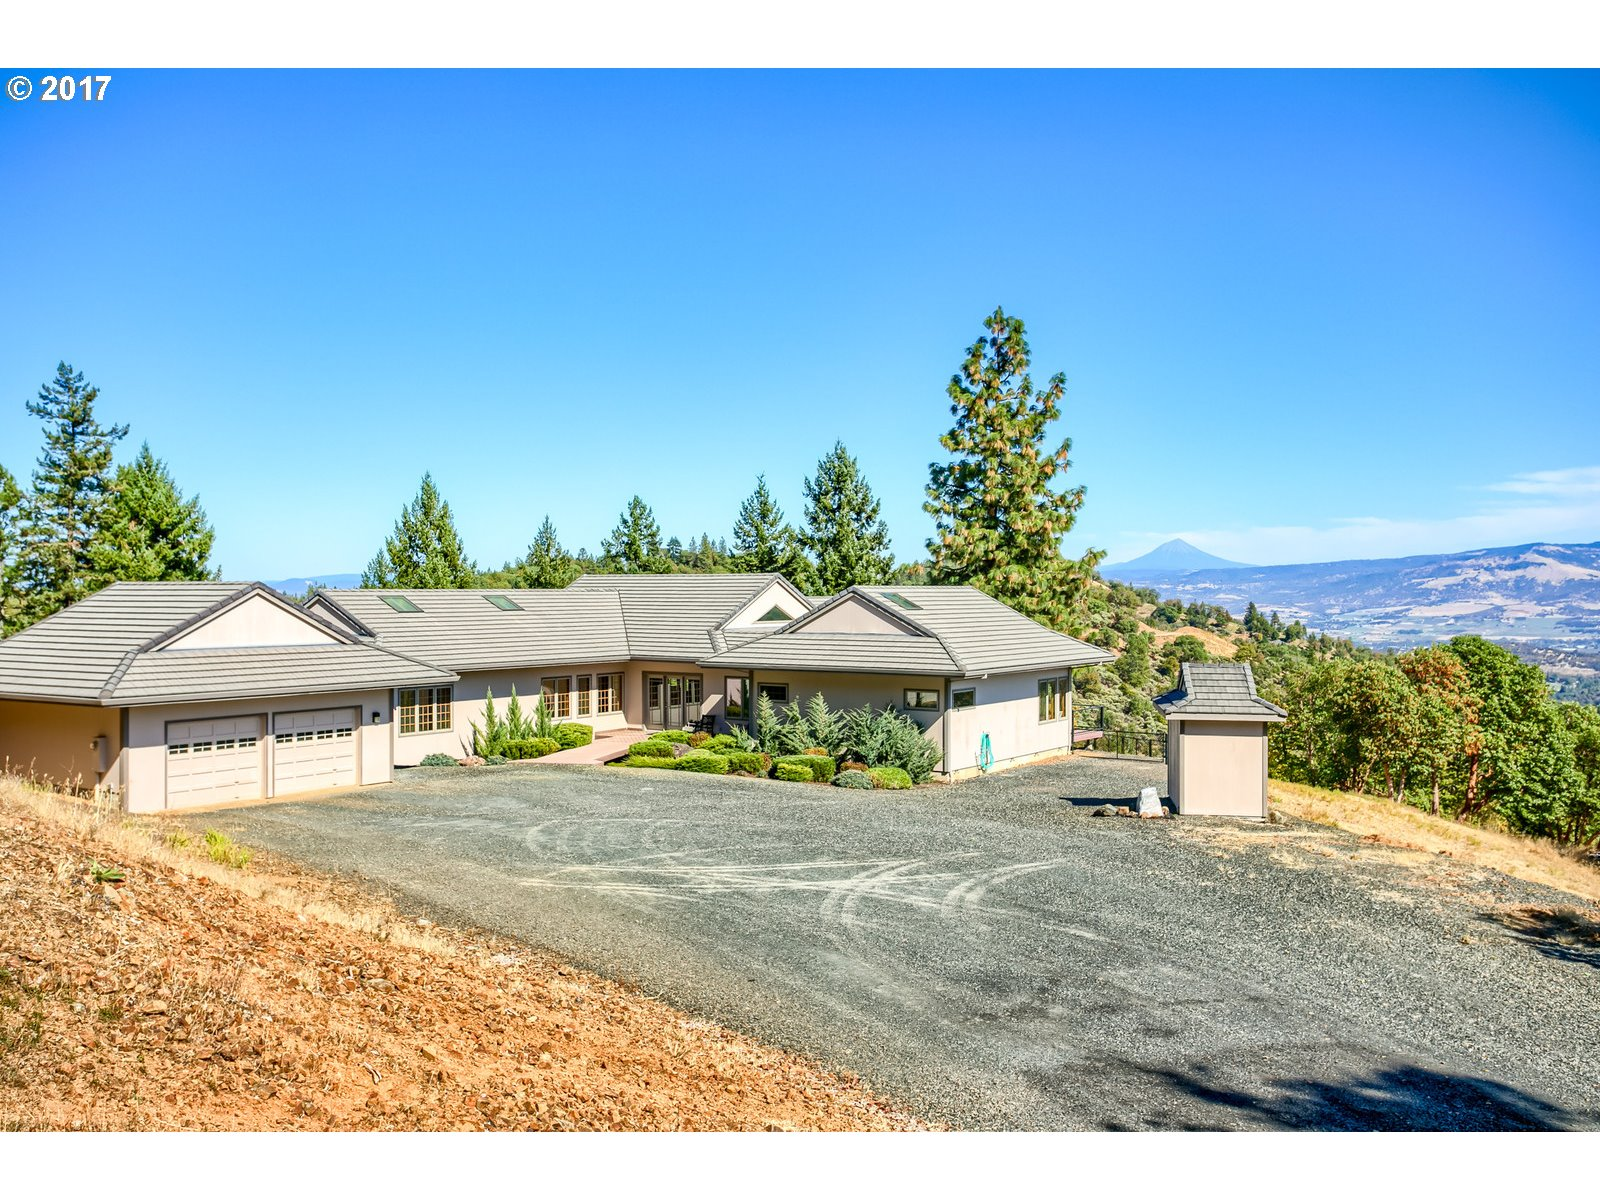 Applegate, OR 3 Bedroom Home For Sale